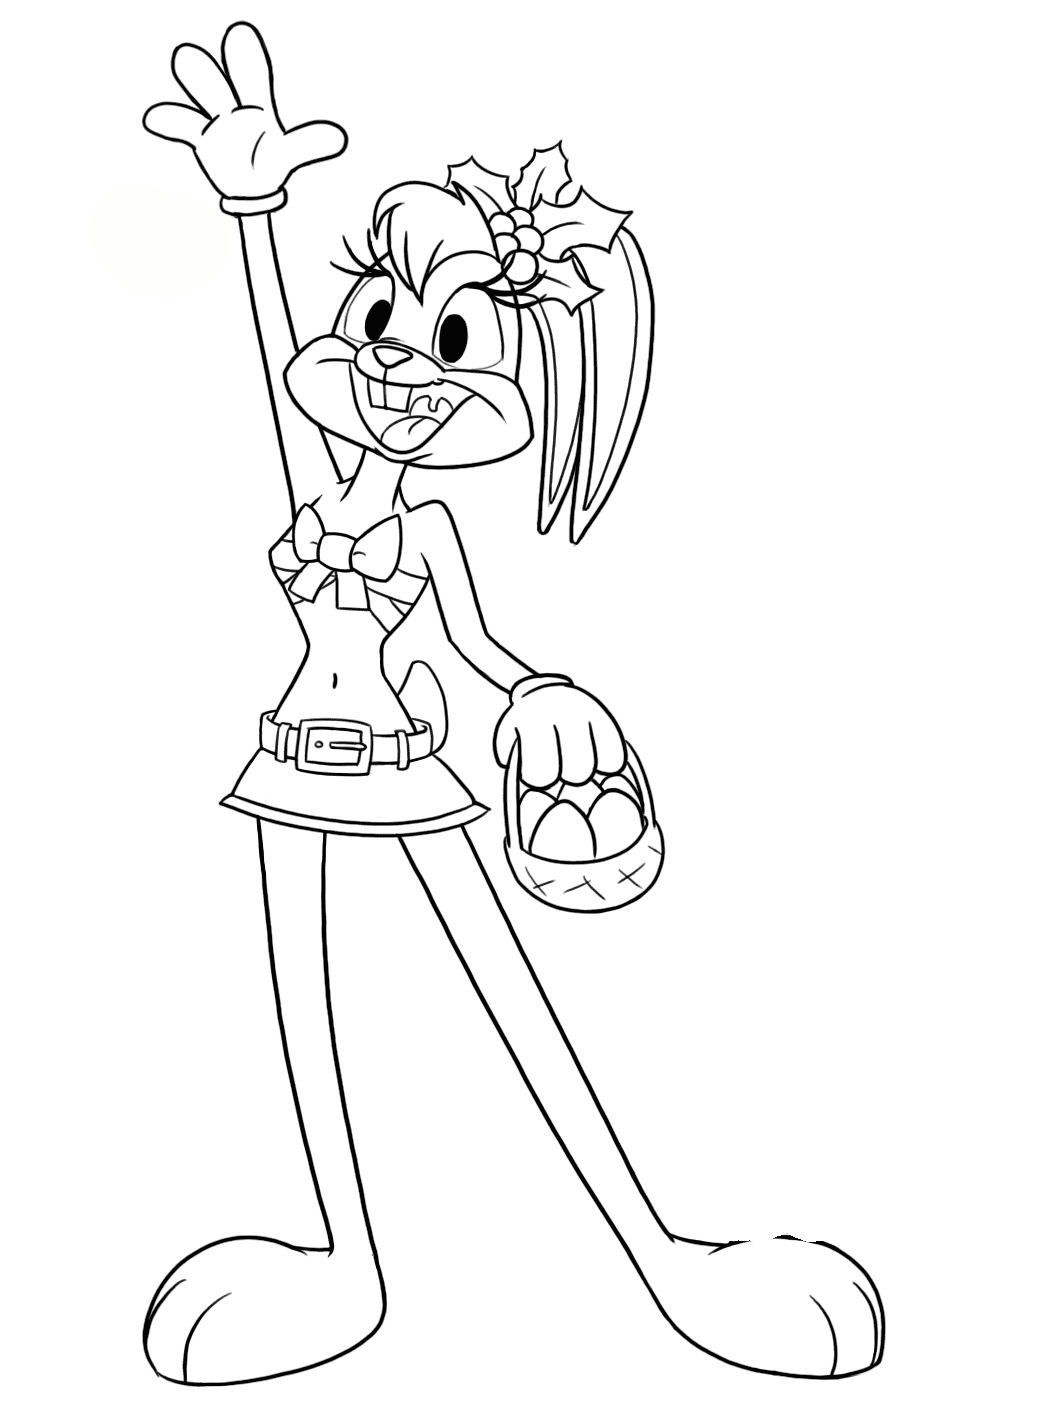 lola bunny coloring pages to download and print for free